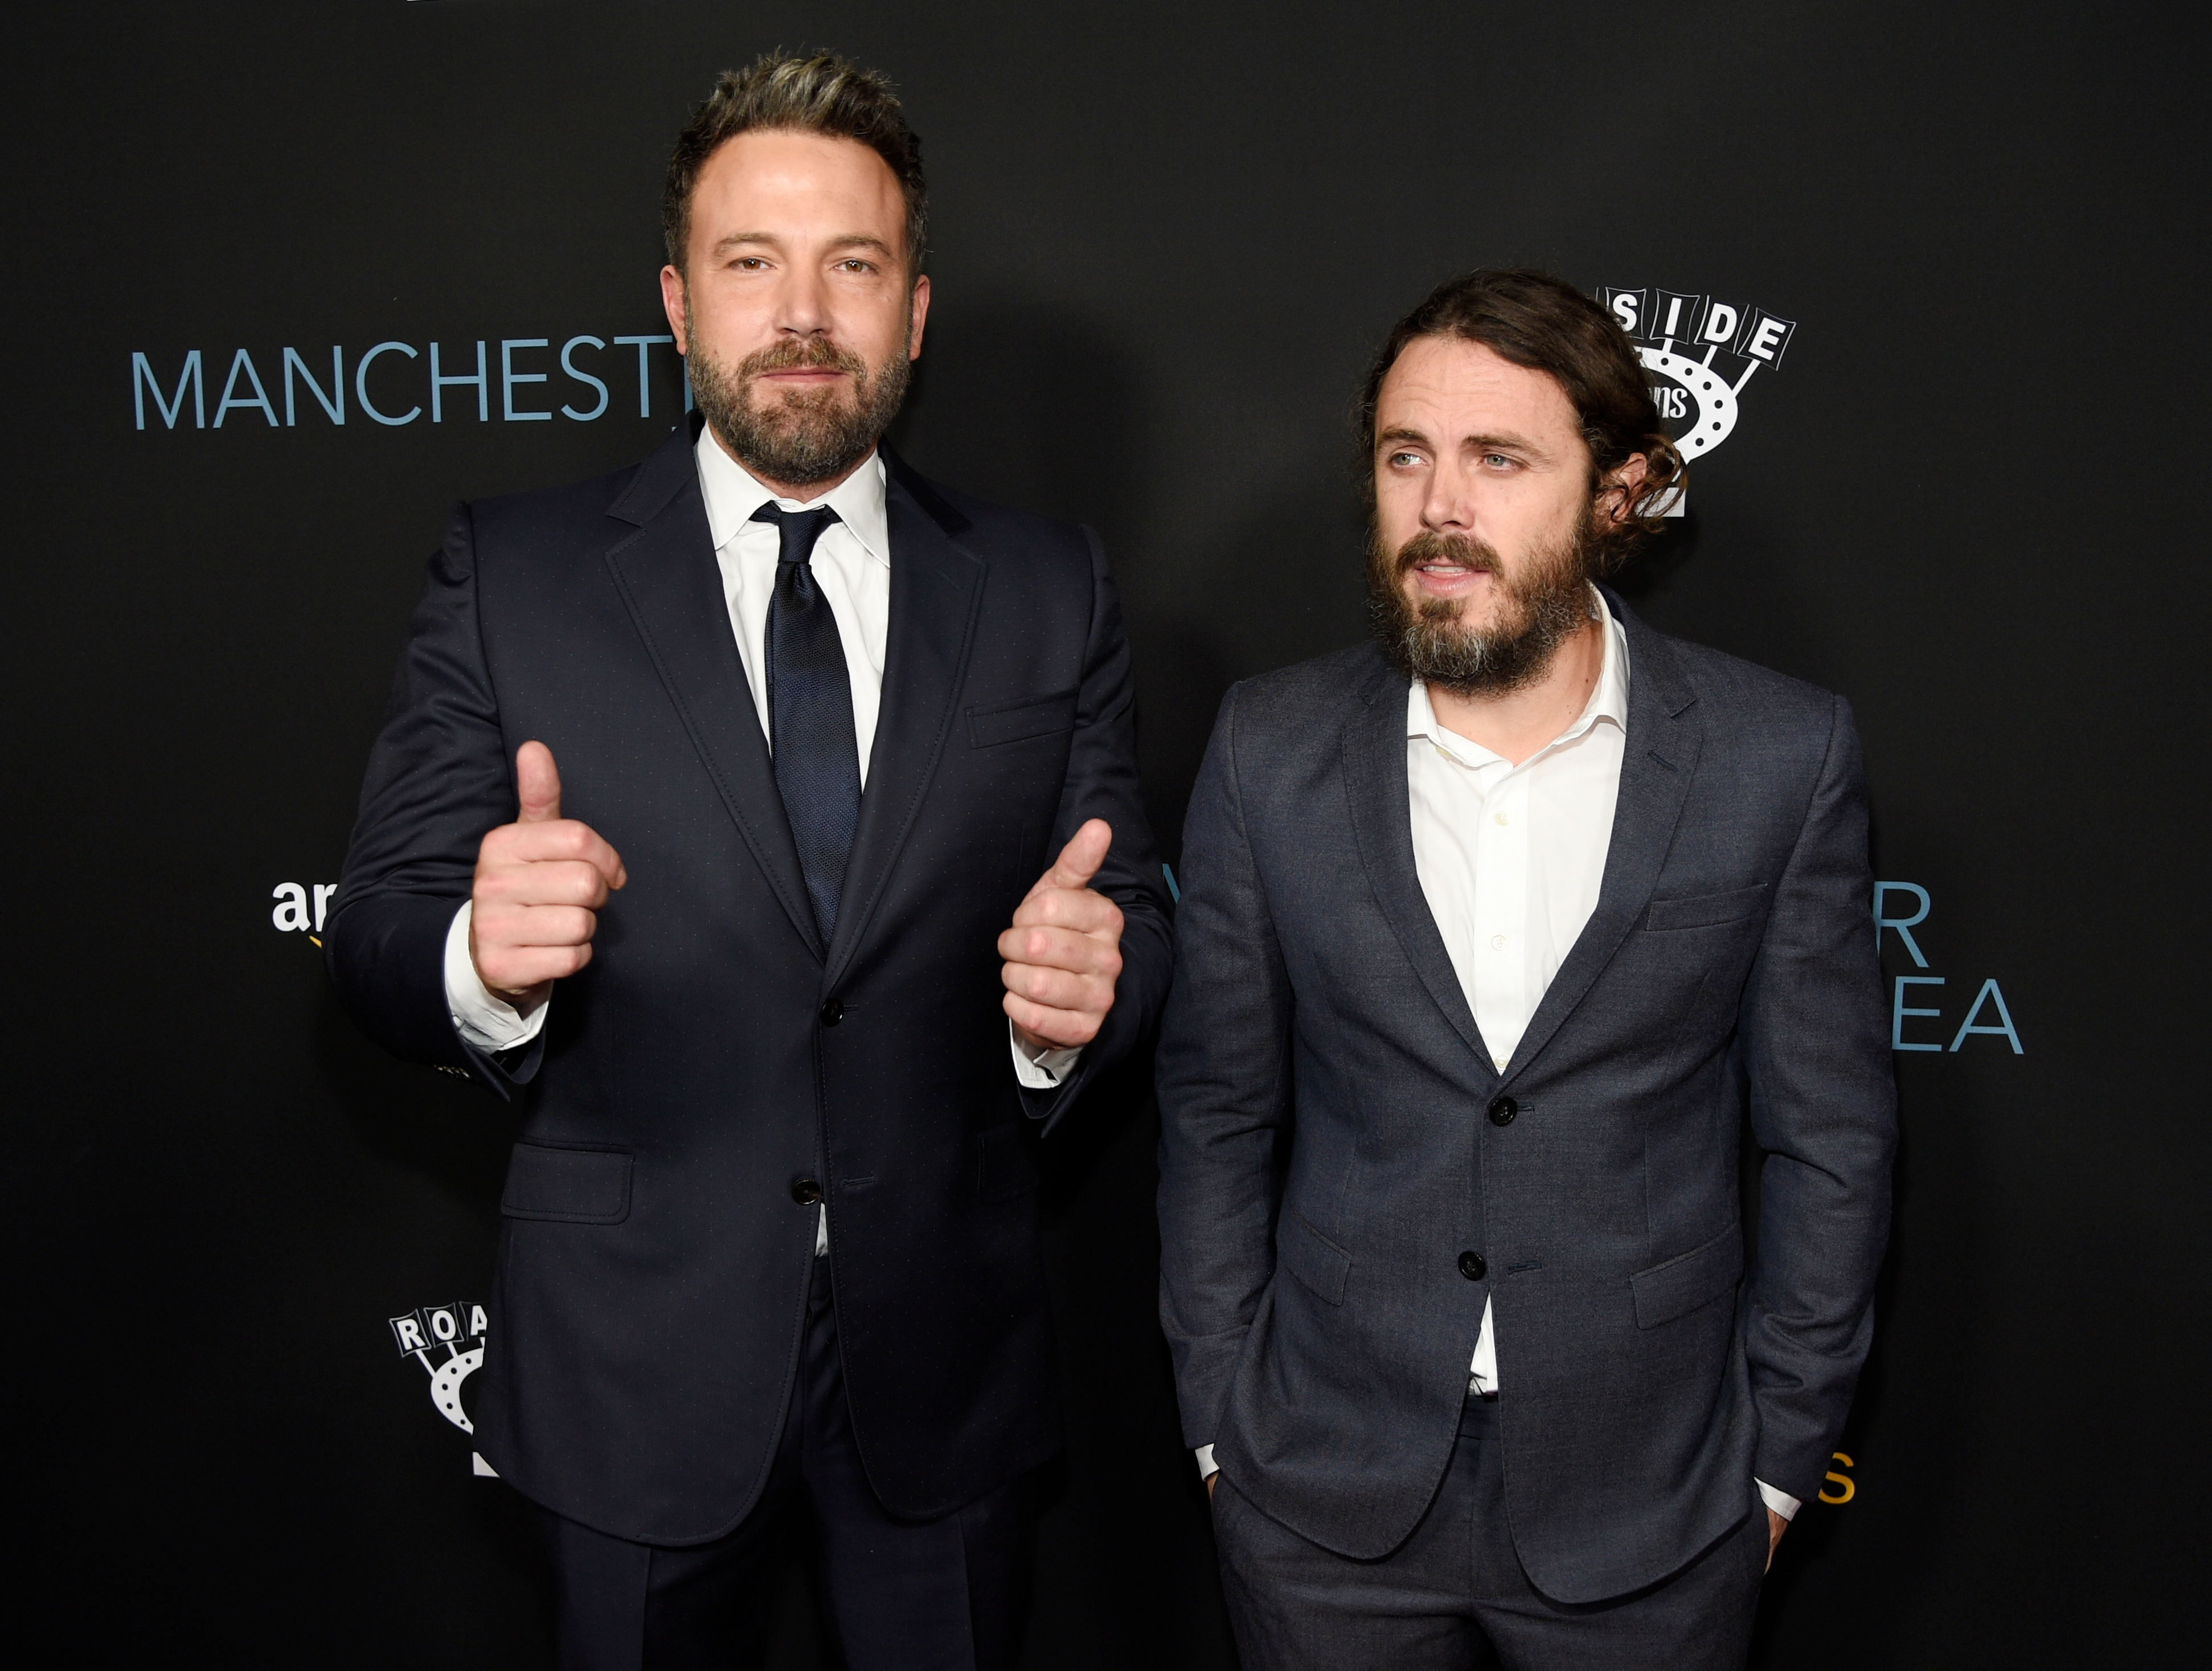 """Casey Affleck, right, a cast member in """"Manchester by the Sea,"""" poses with his brother Ben Affleck at the premiere of the film at the Samuel Goldwyn Theater on Monday, Nov. 14, 2016, in Beverly Hills, Calif. (Photo by Chris Pizzello/Invision/AP)"""